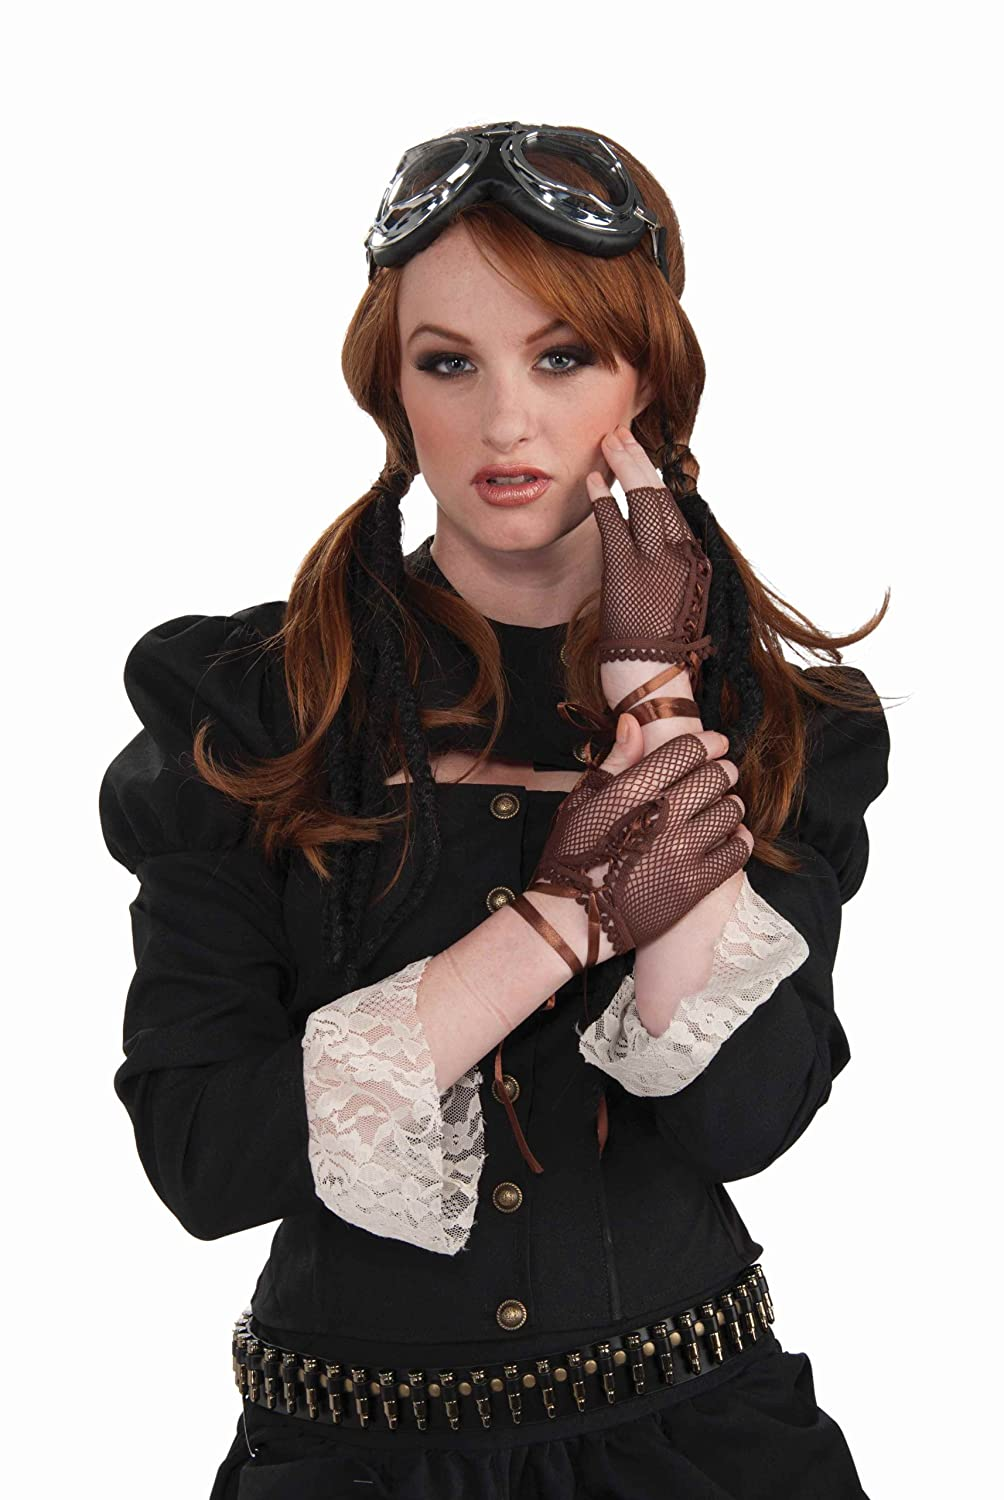 Vintage Gloves History- 1900, 1910, 1920, 1930 1940, 1950, 1960  Steampunk Fingerless Gloves Costume Accessory $5.89 AT vintagedancer.com